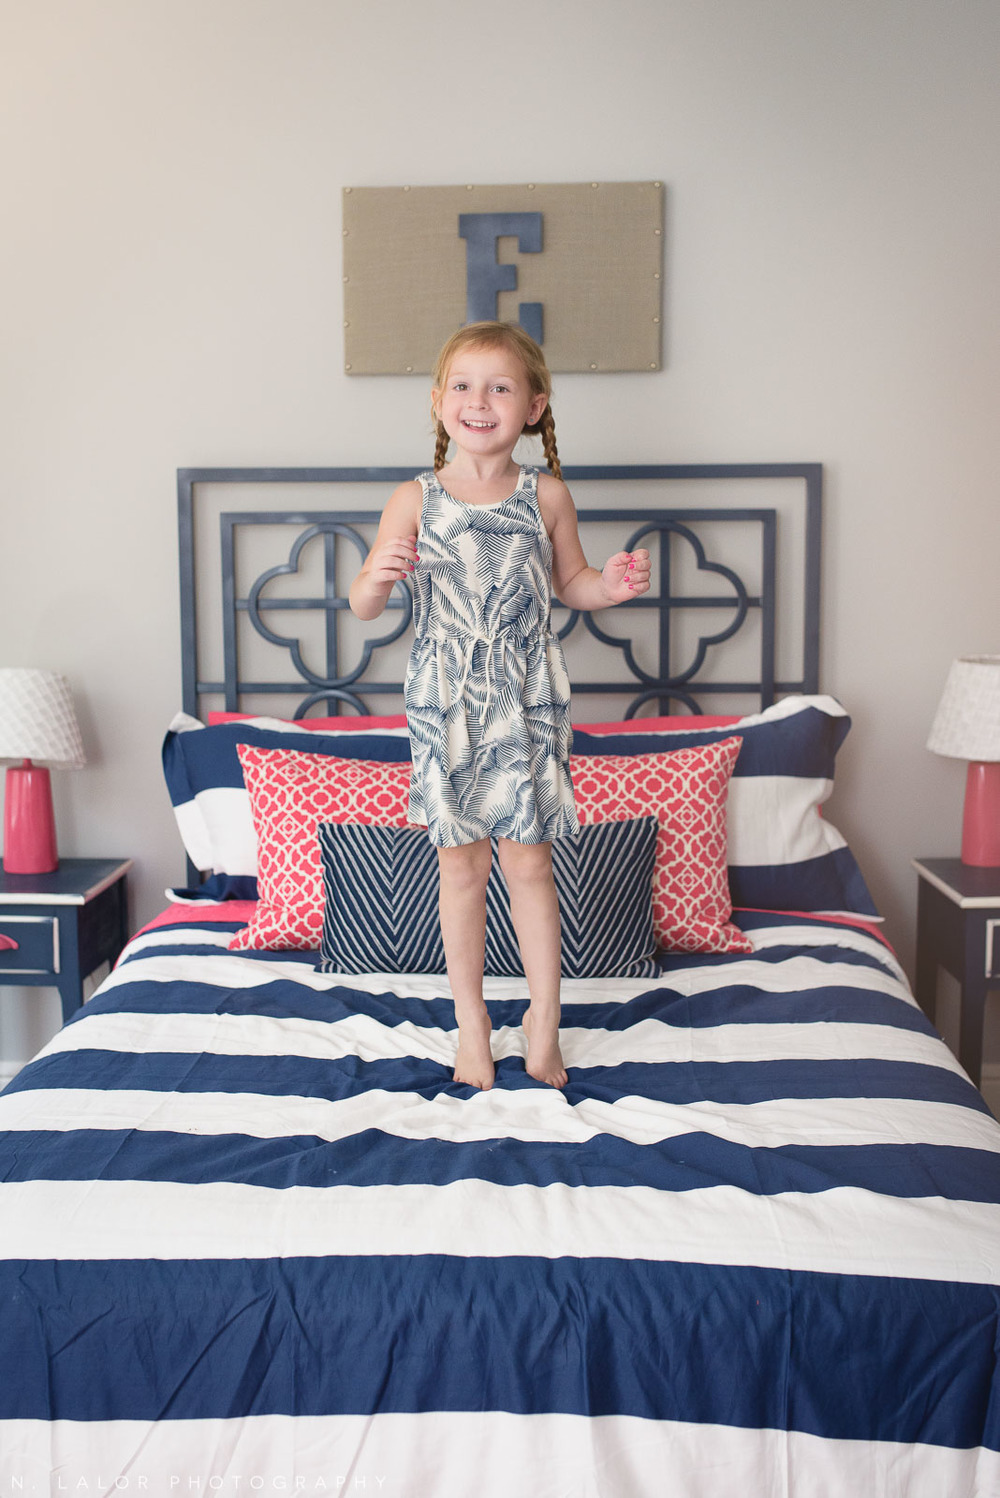 4-year old girl jumping on her bed. Lifestyle portrait by N. Lalor Photography.